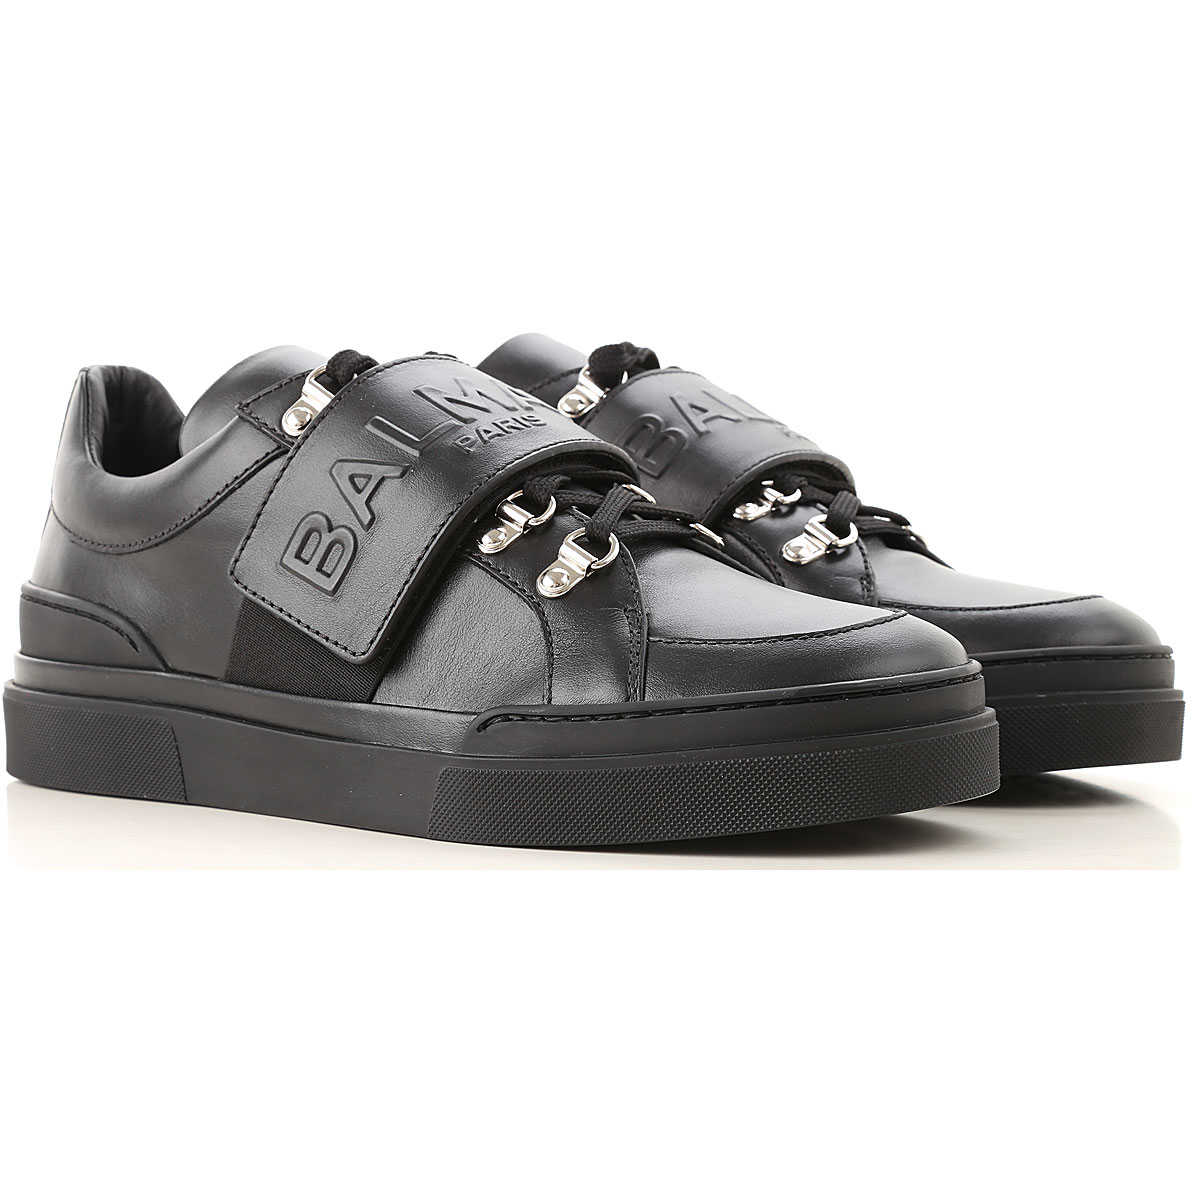 Balmain Sneakers for Men On Sale in Outlet